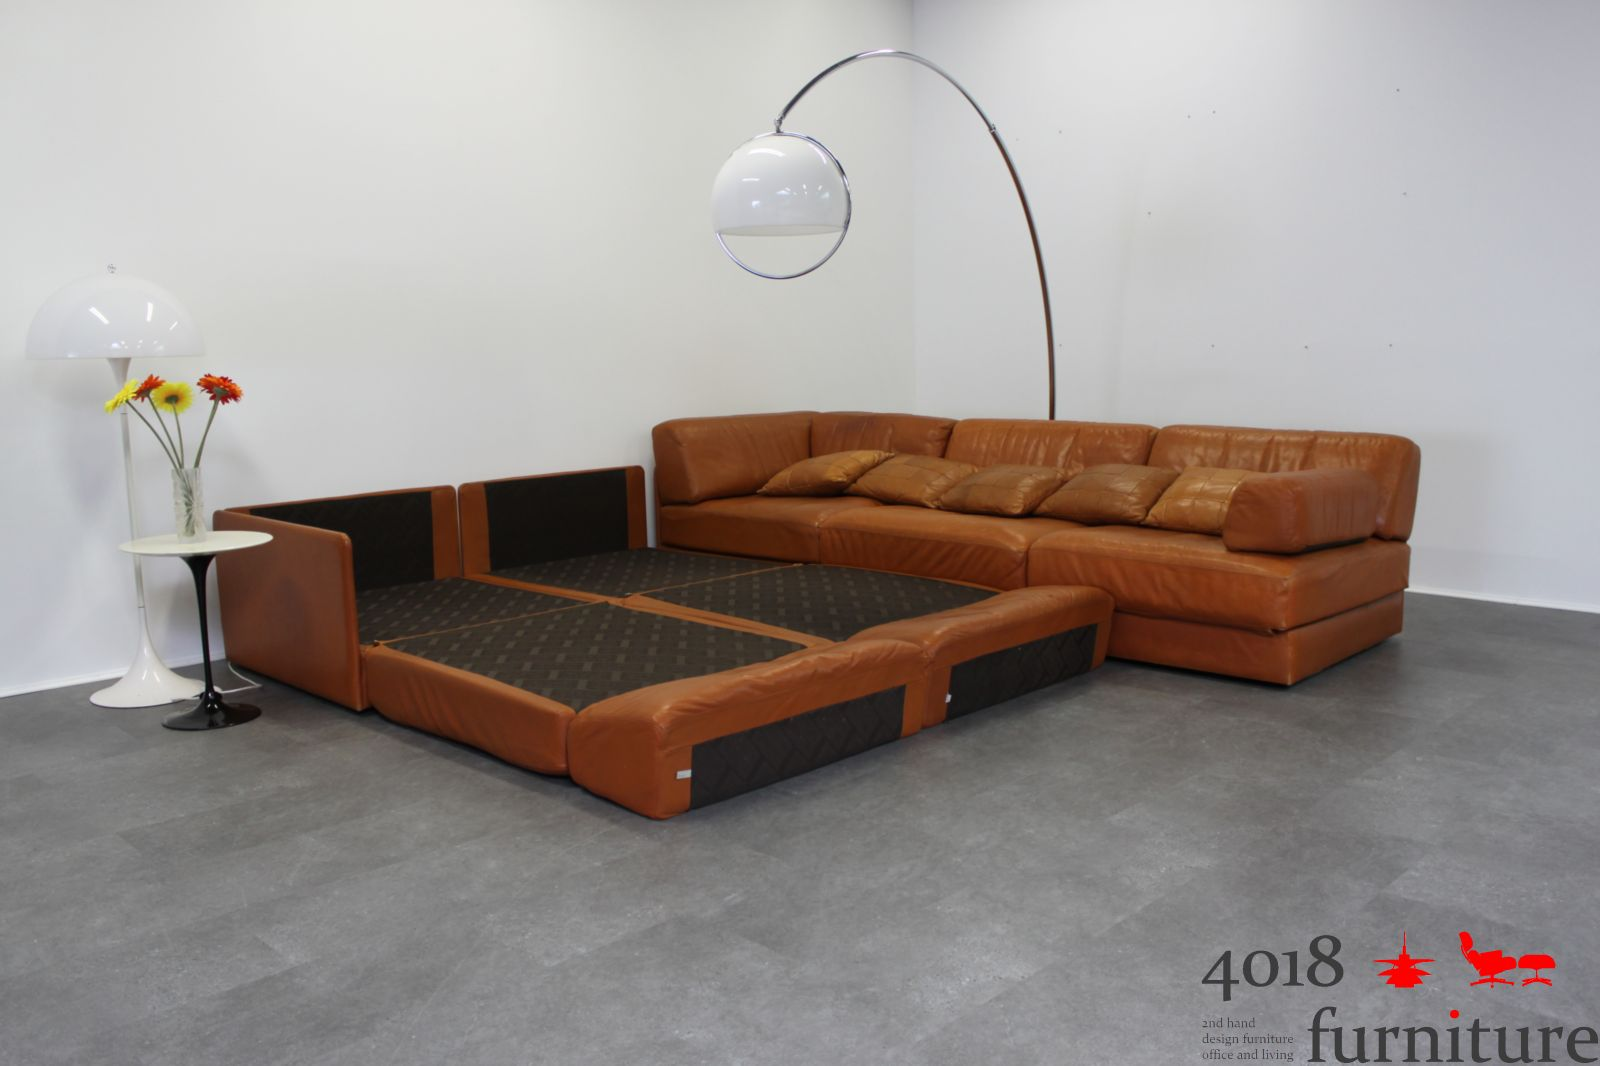 de sede ds 76 cognac 4 5 elemente daybed schlafsofa leder ebay. Black Bedroom Furniture Sets. Home Design Ideas